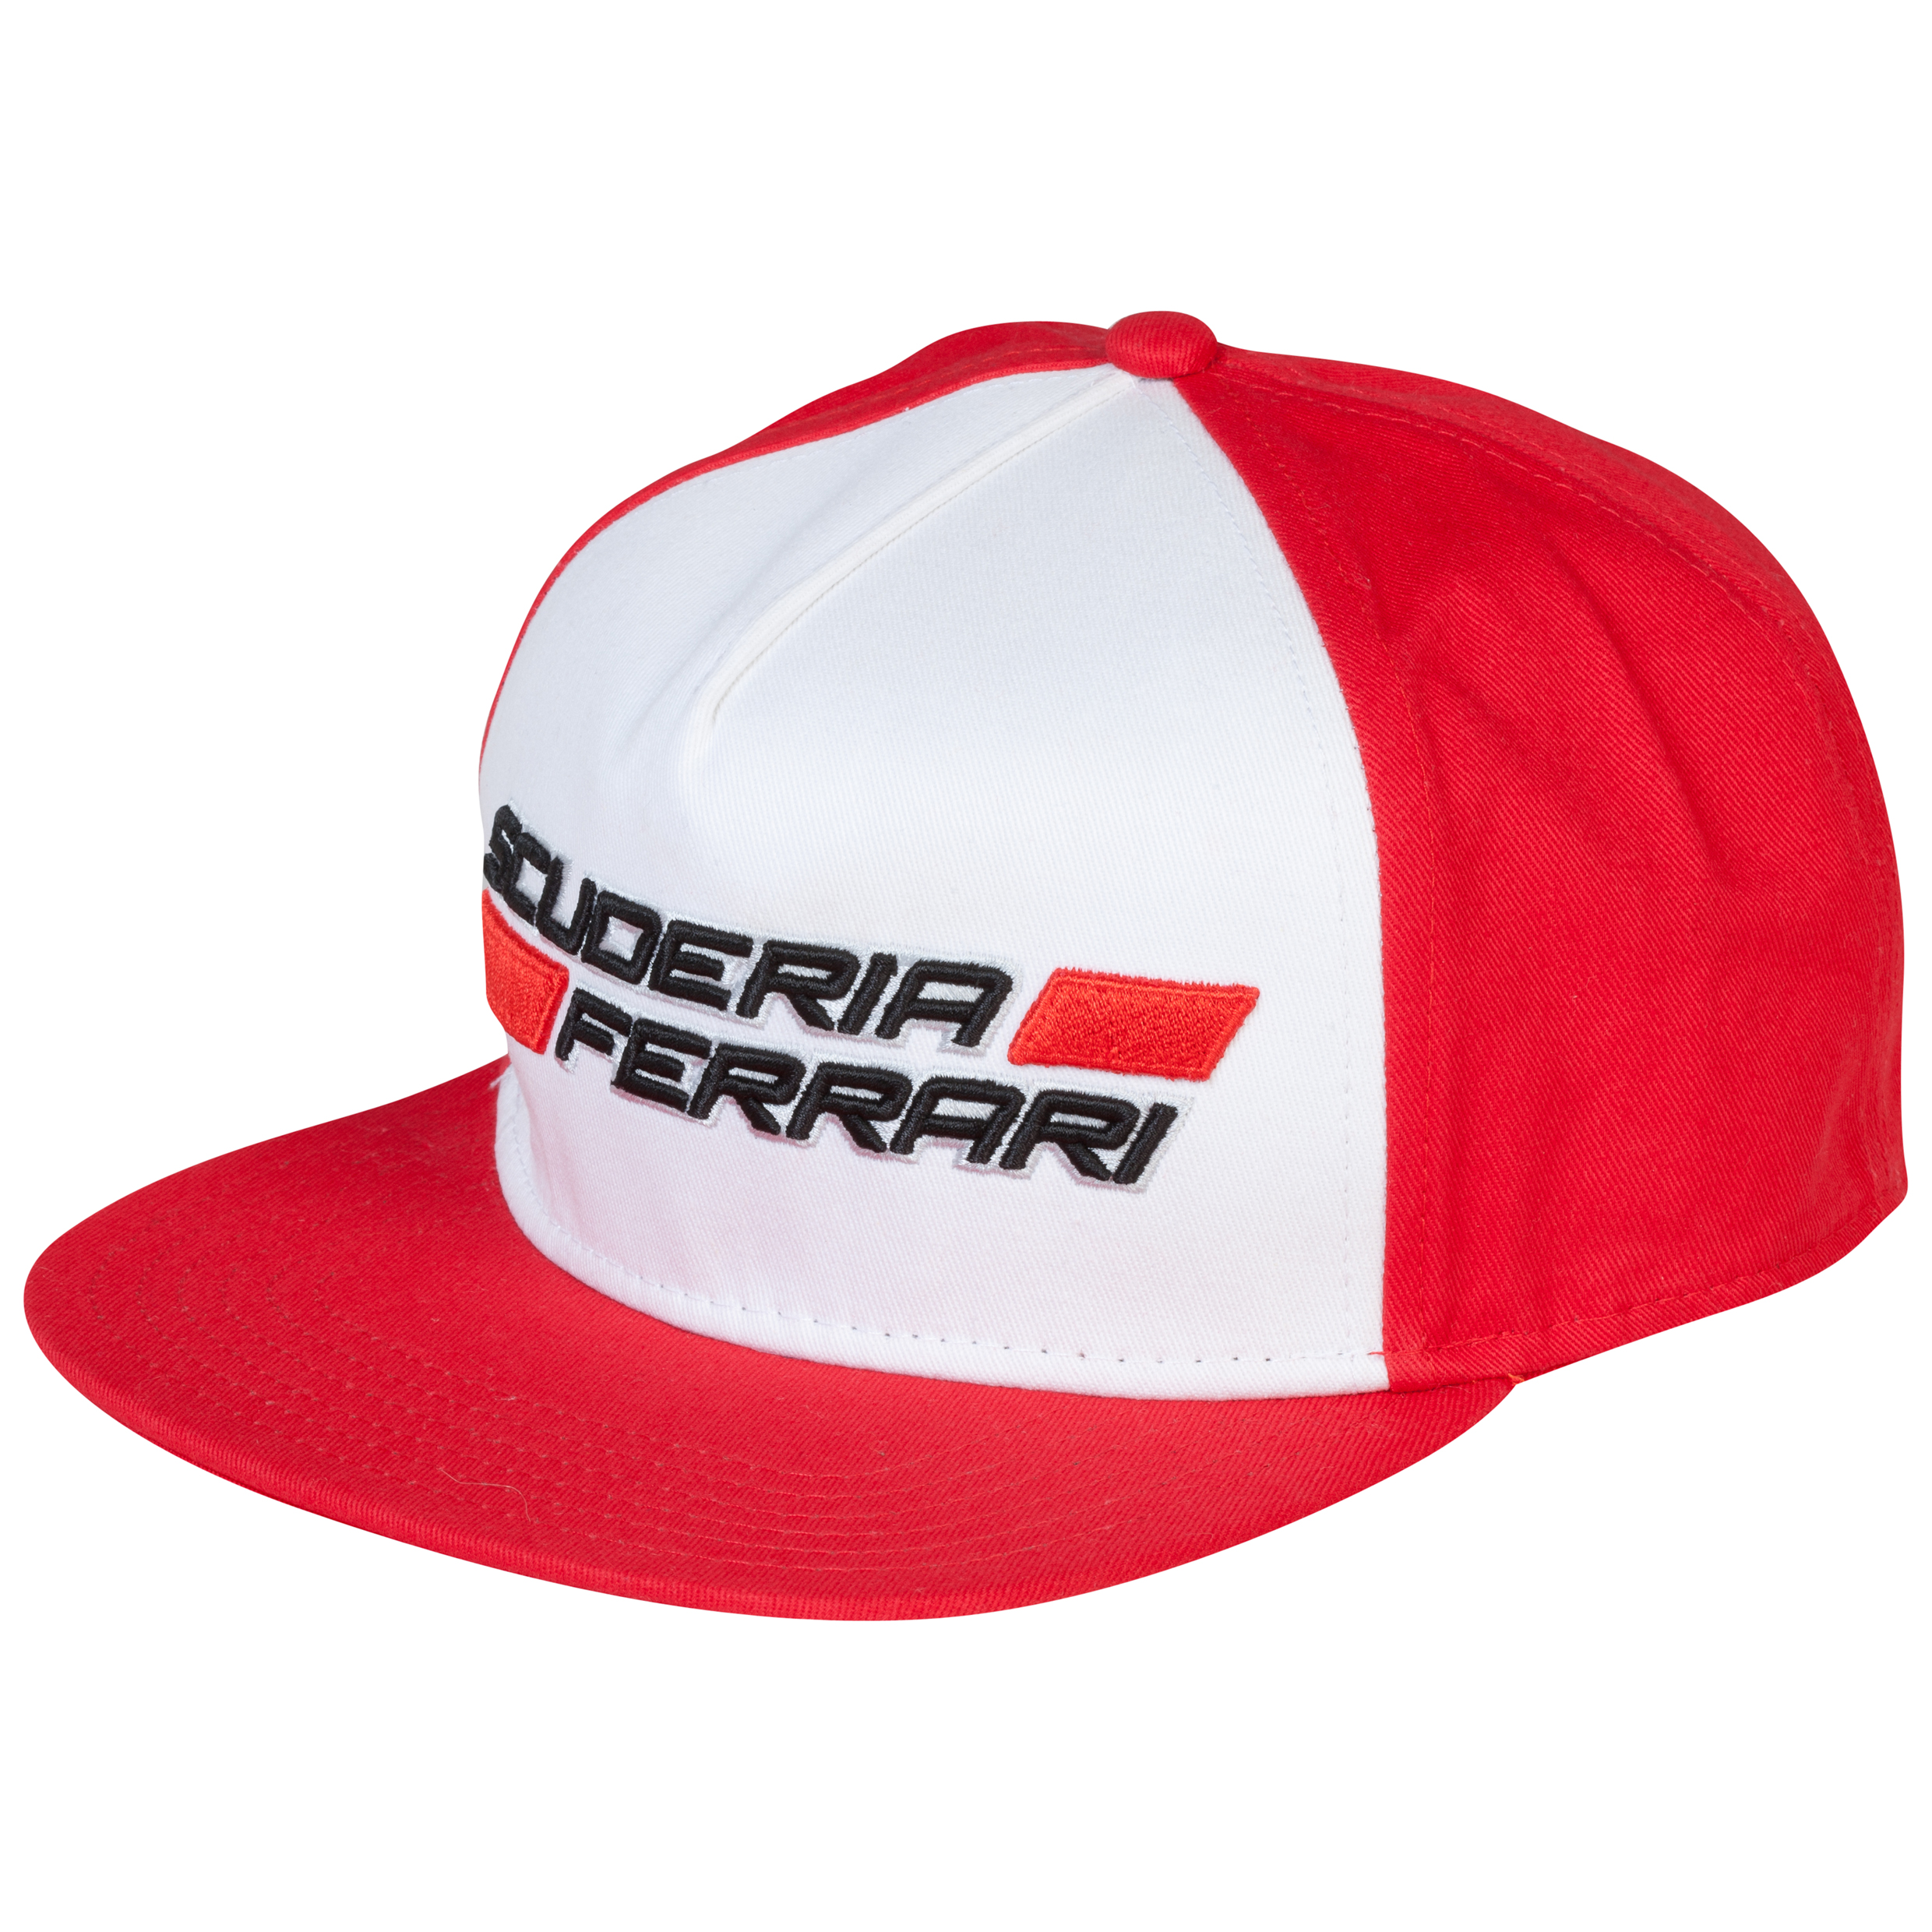 Scuderia Ferrari Old School Cap - Red